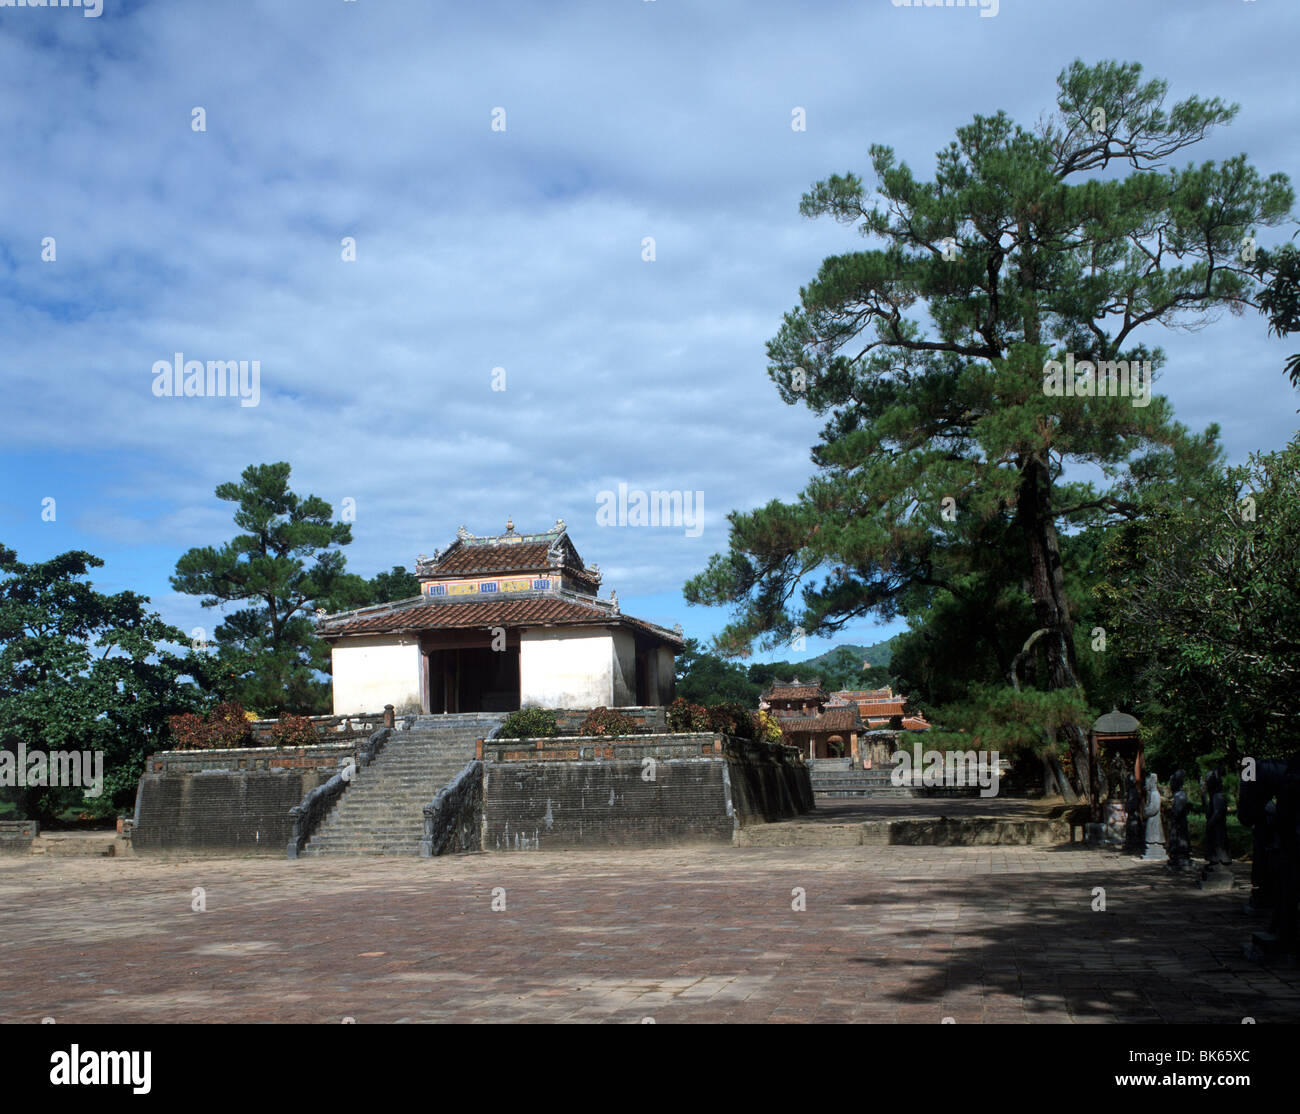 Most graceful of the eight Nguyen Dynasty tombs, UNESCO World Heritage Site, Royal Mausoleums, Hue, Vietnam - Stock Image